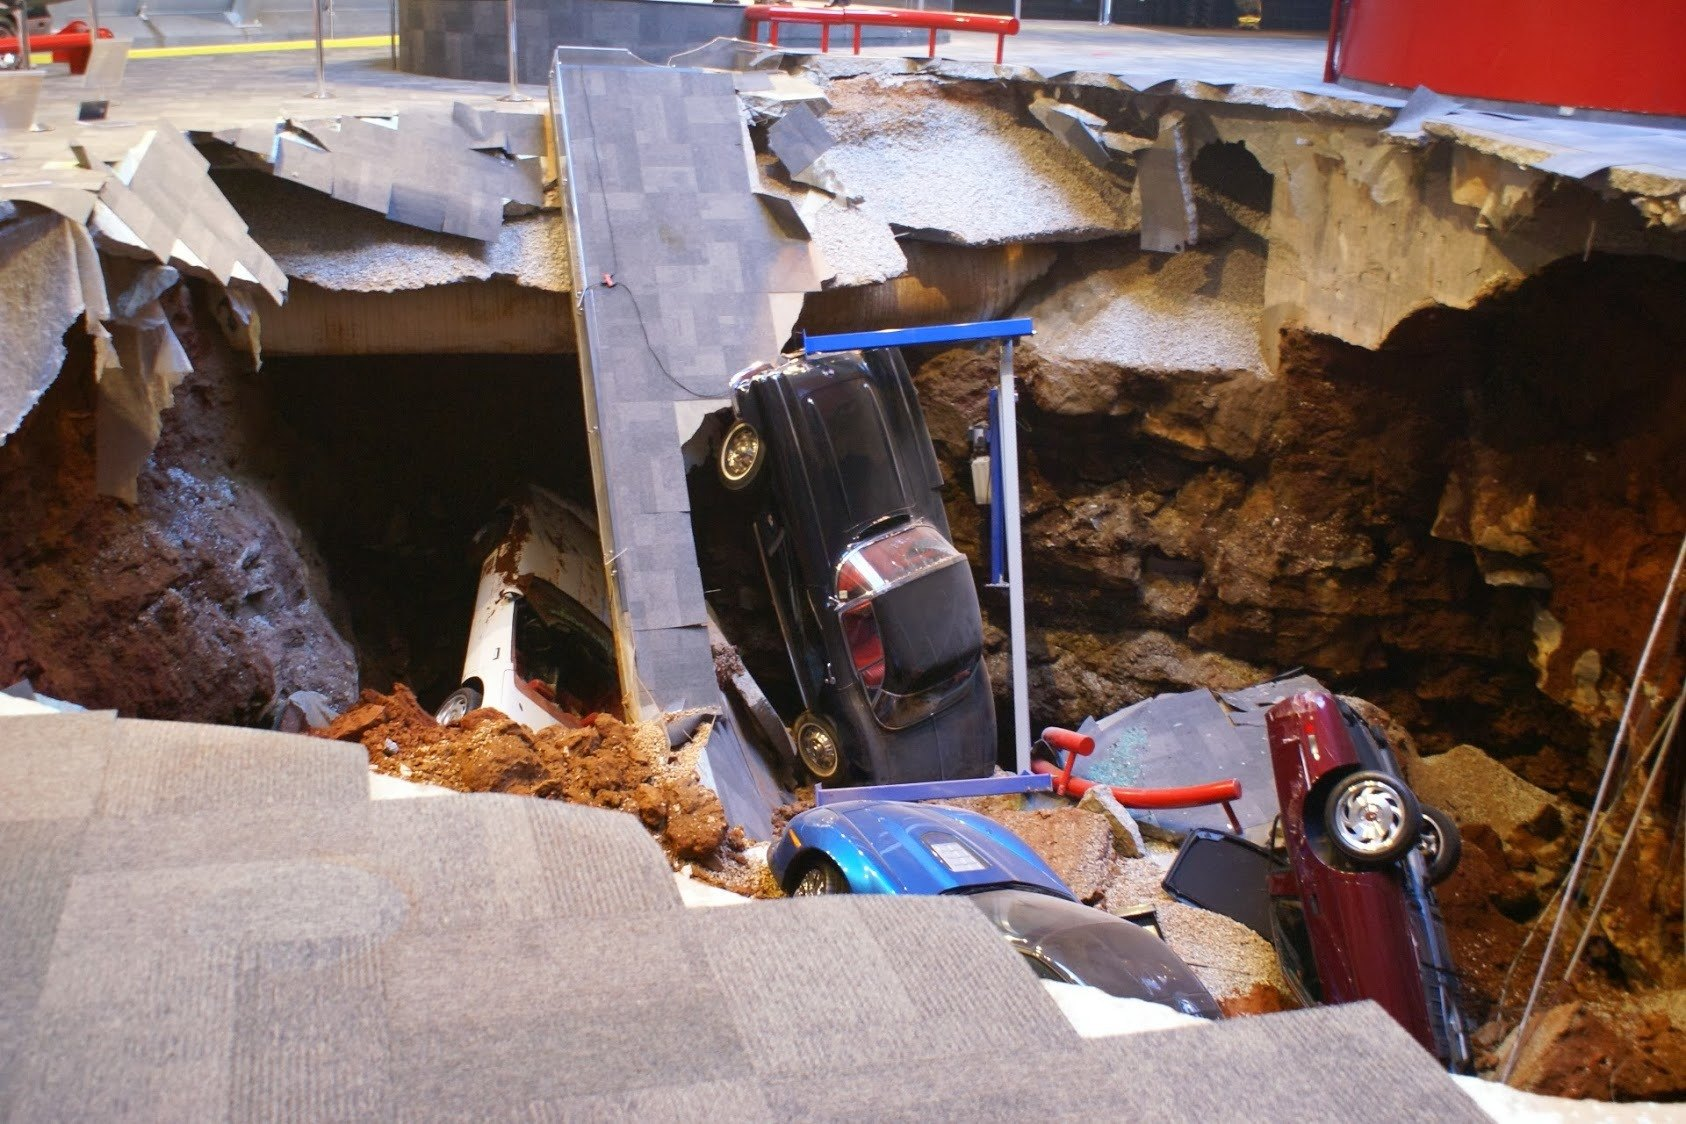 The sinkhole that erupted in the National Corvette Museum on February 12, 2014 caused damage to eight 'Vettes.